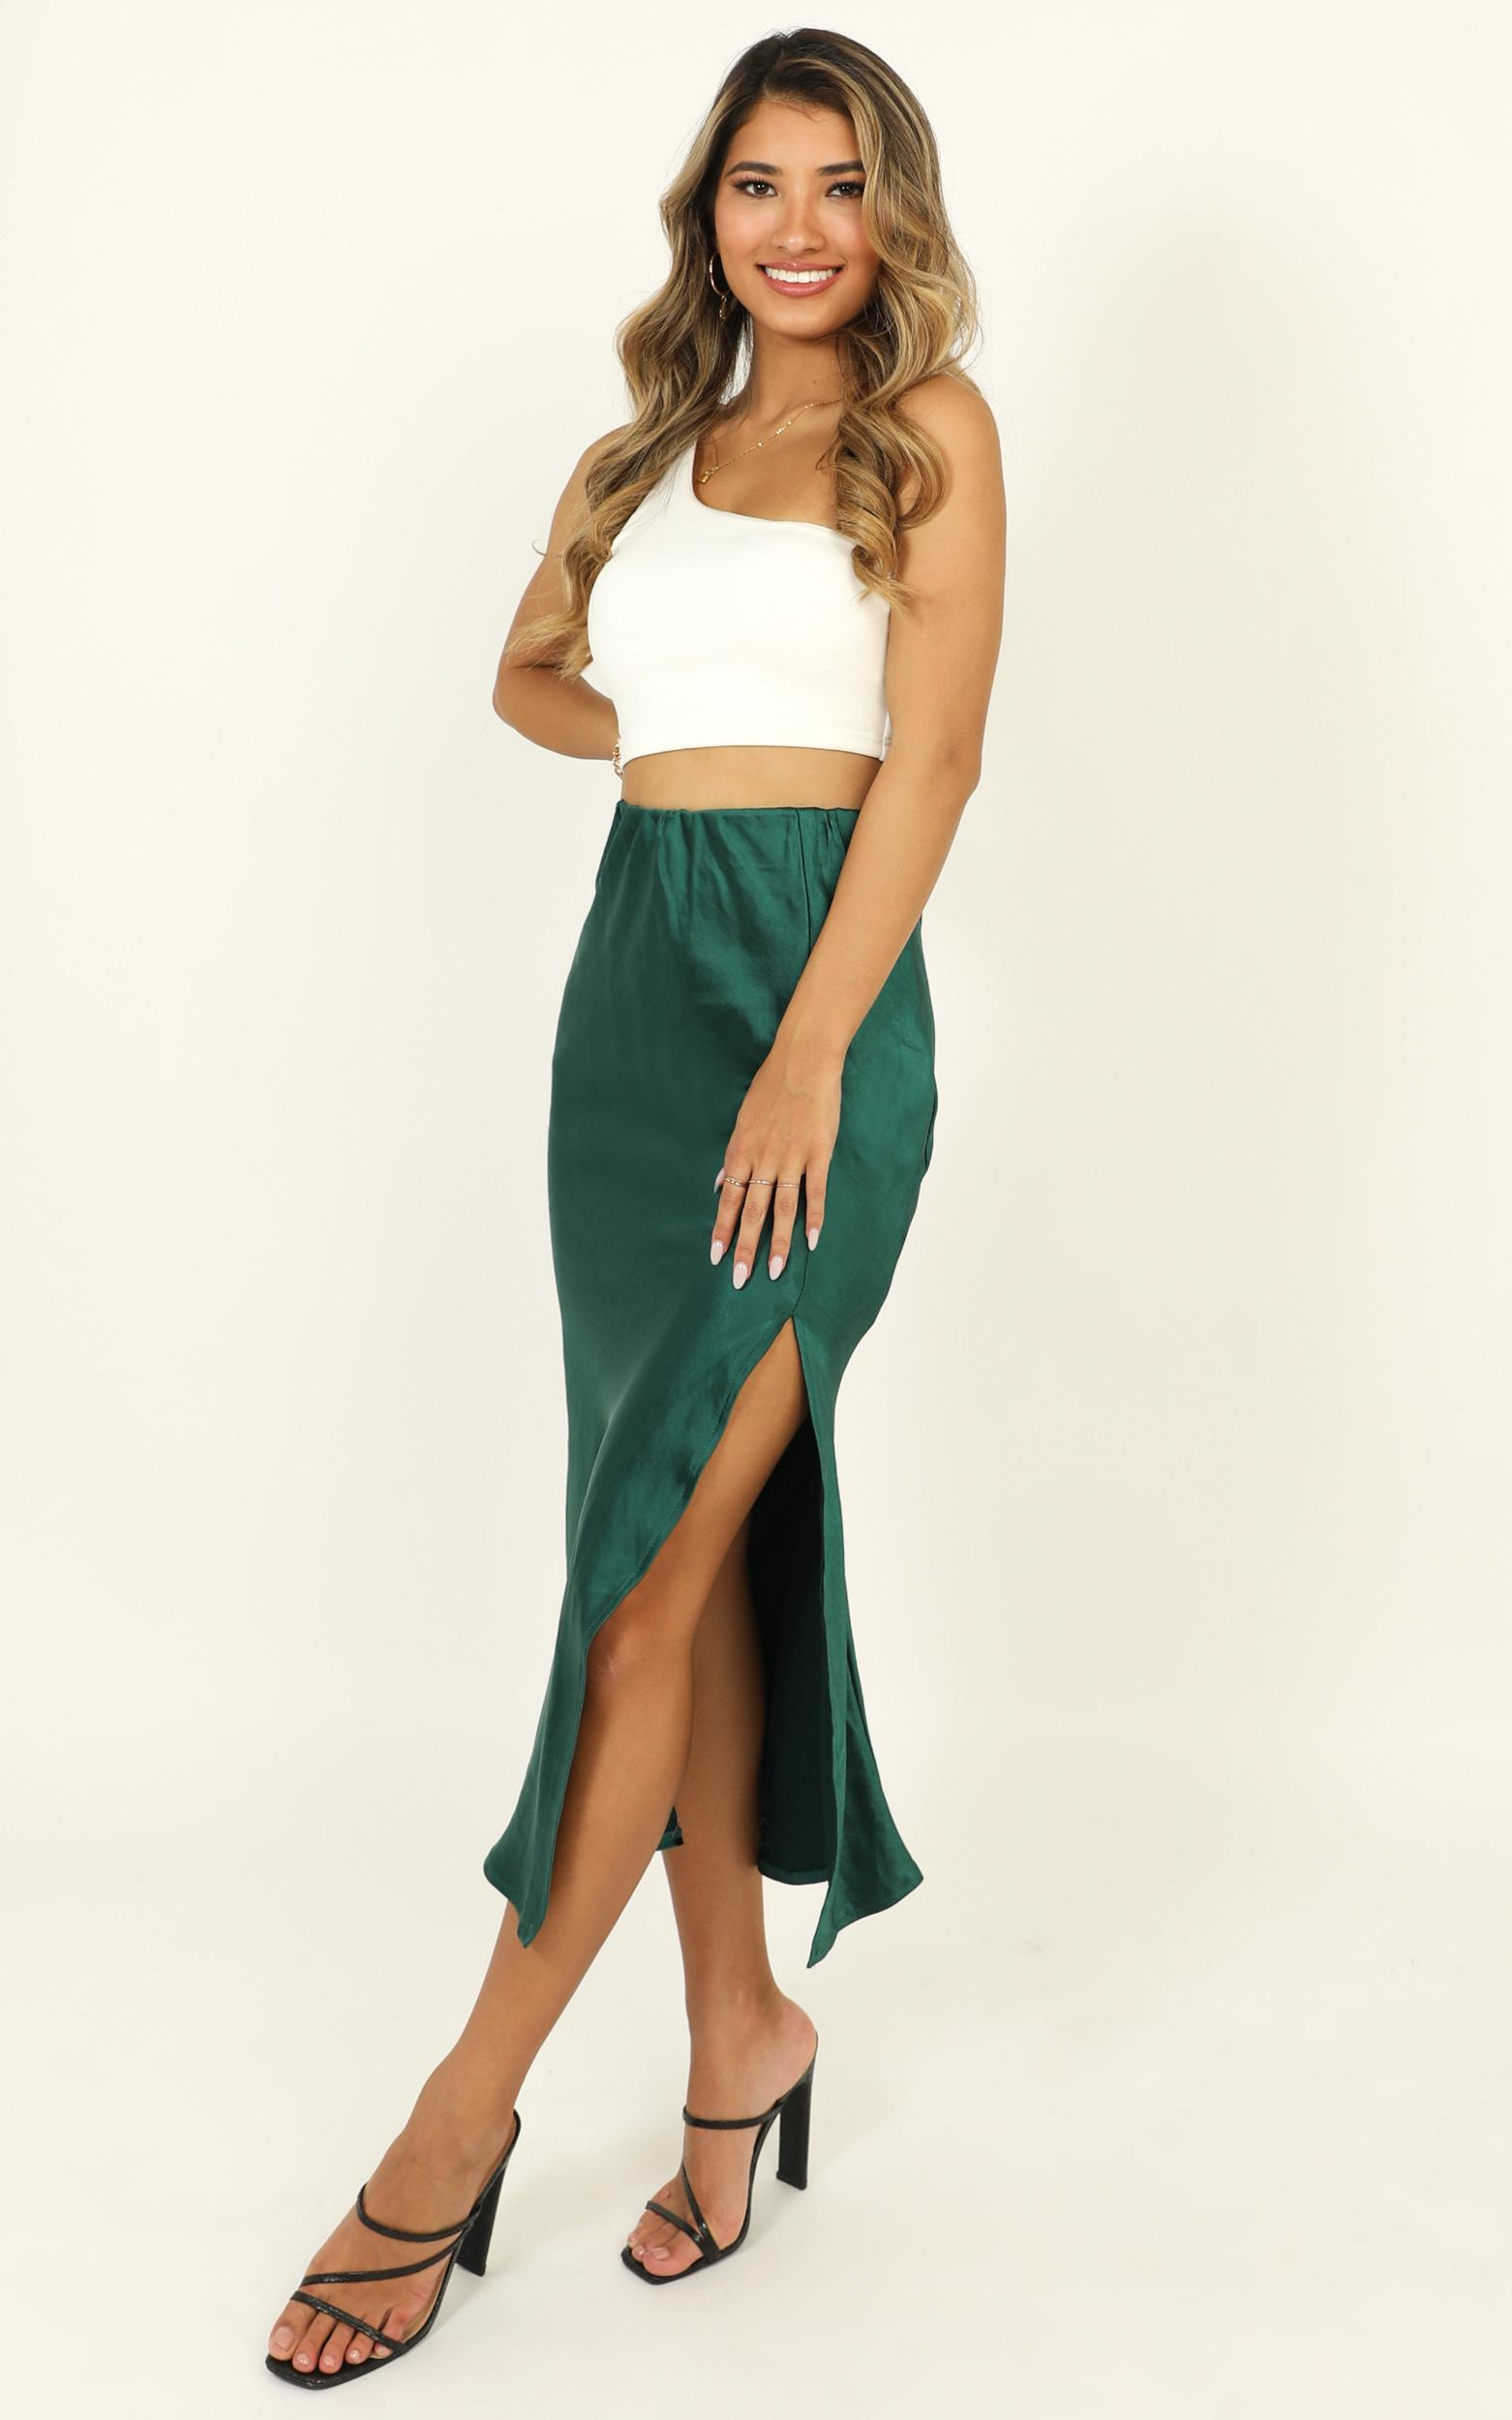 Fashion Game skirt in emerald green satin - 12 (L), Green, hi-res image number null